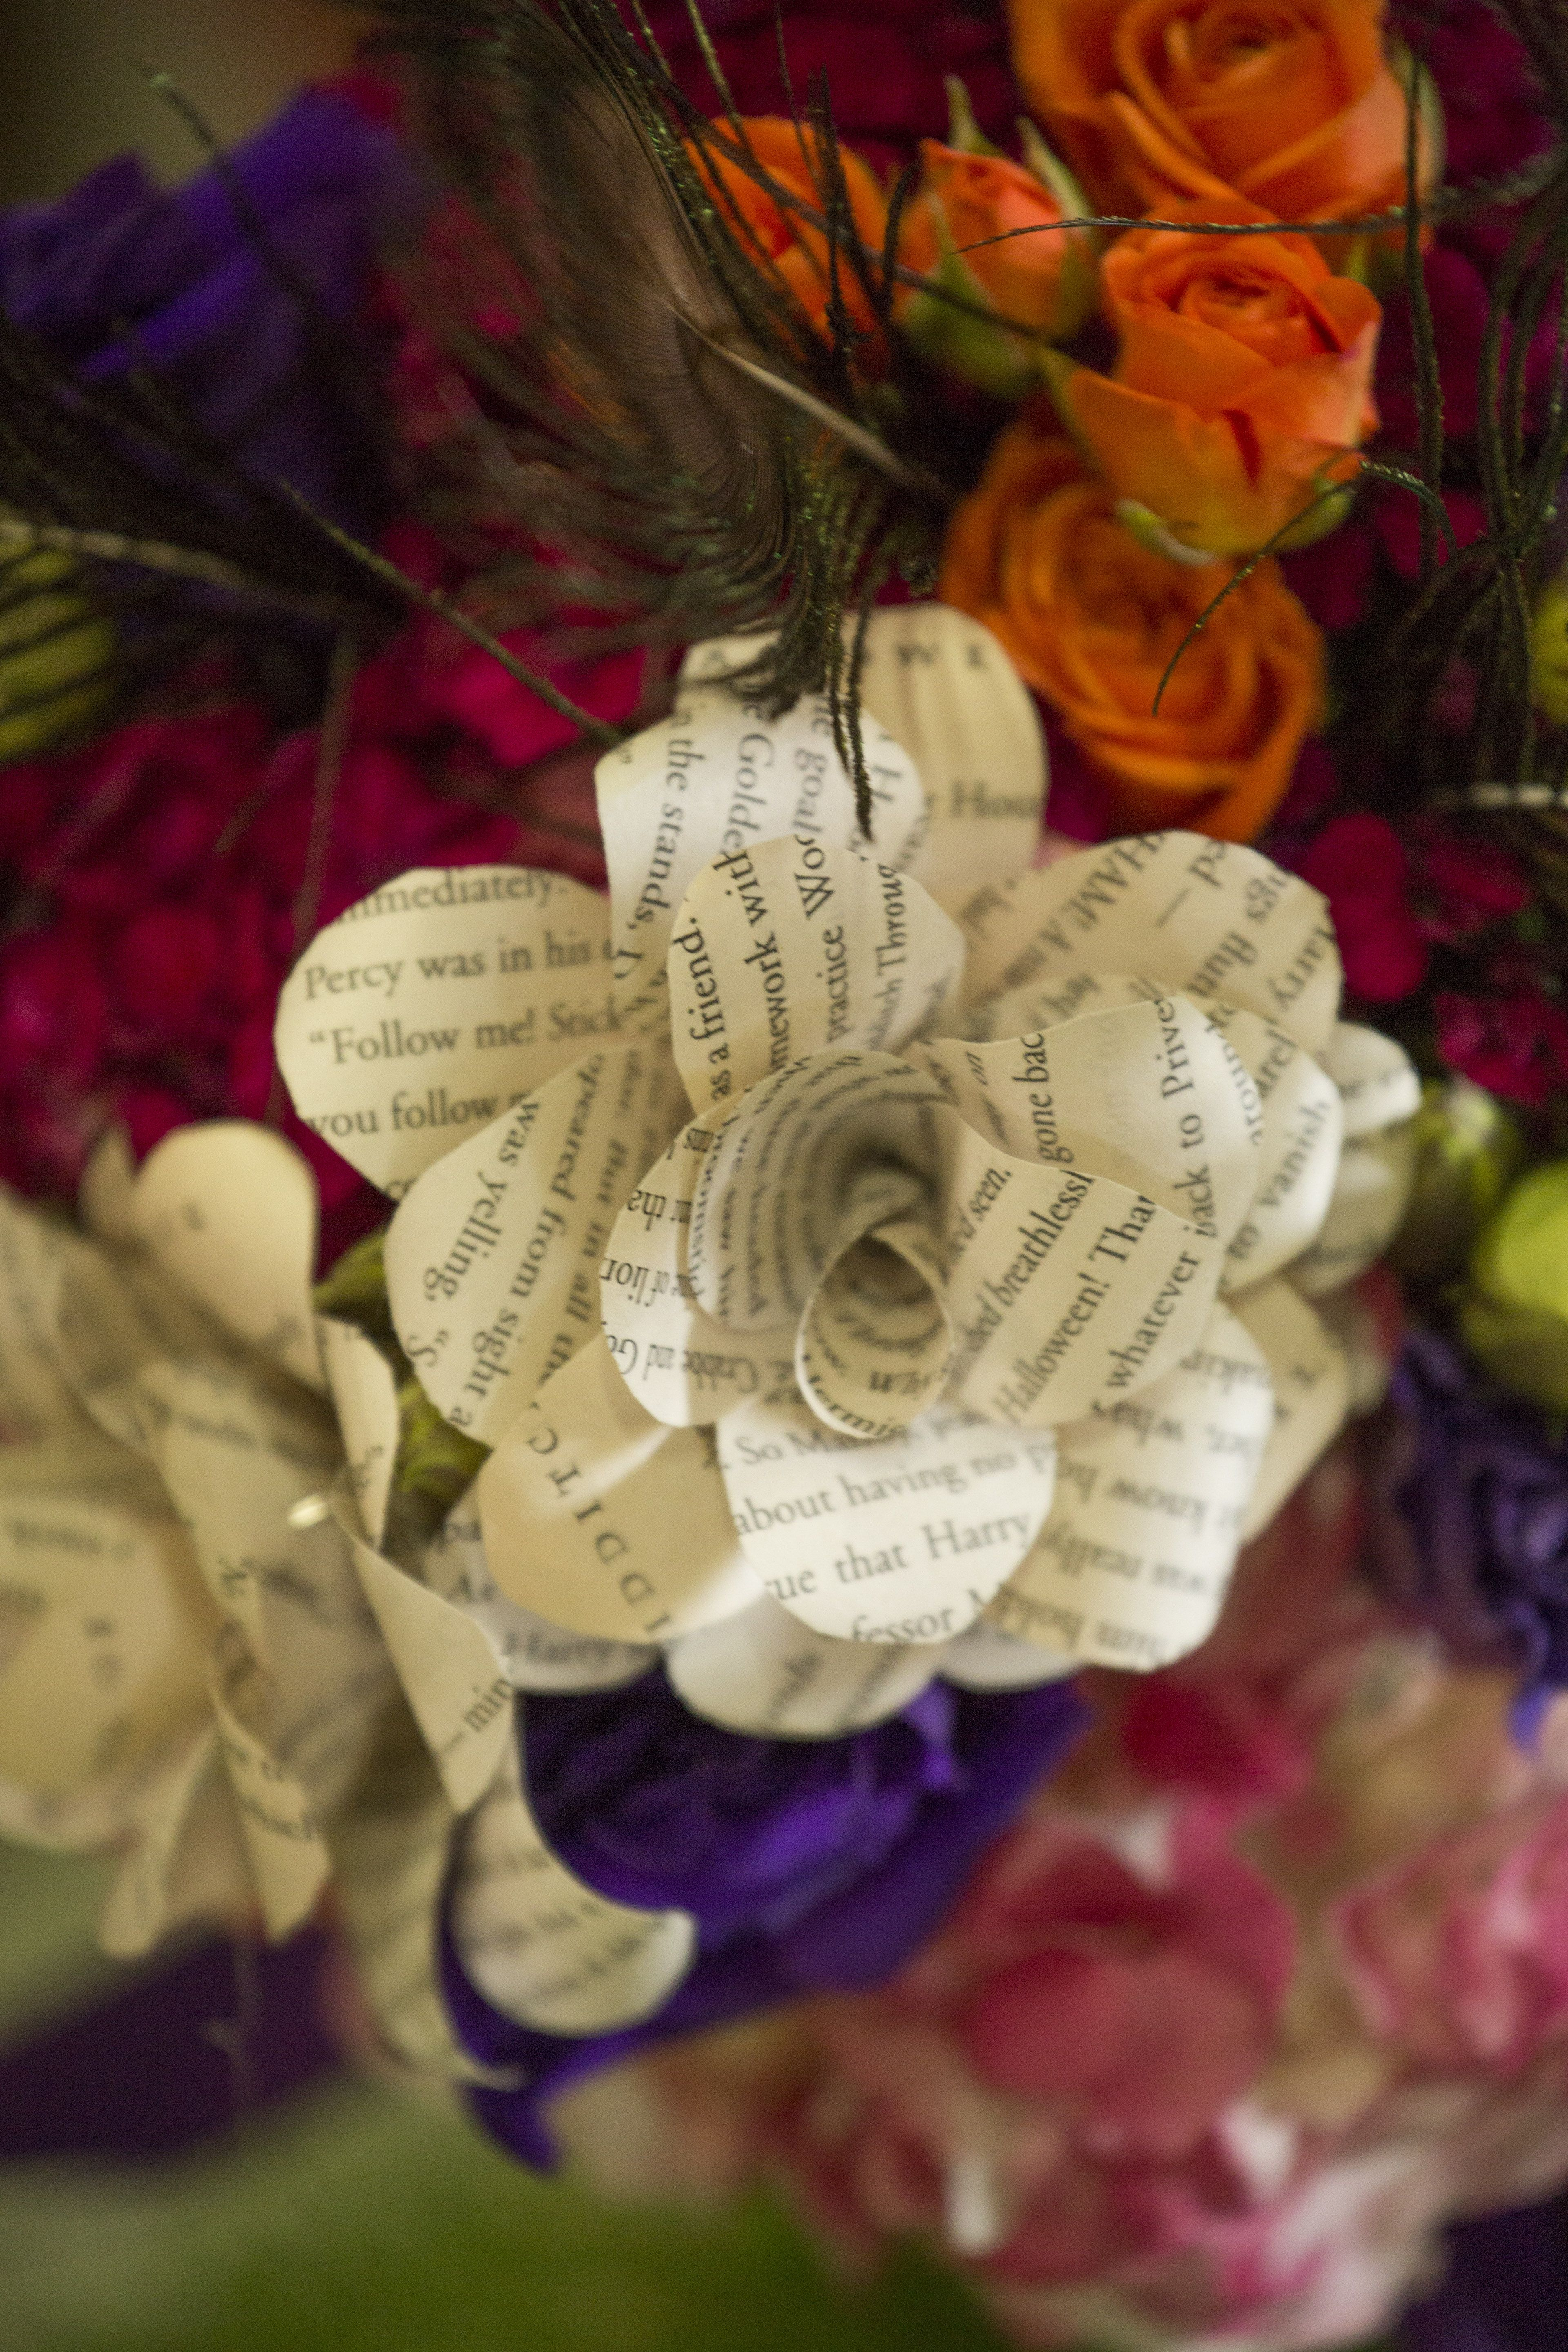 Fl Arrangements Accented With Paper Flowers Created Using Pages From Harry Potter Books